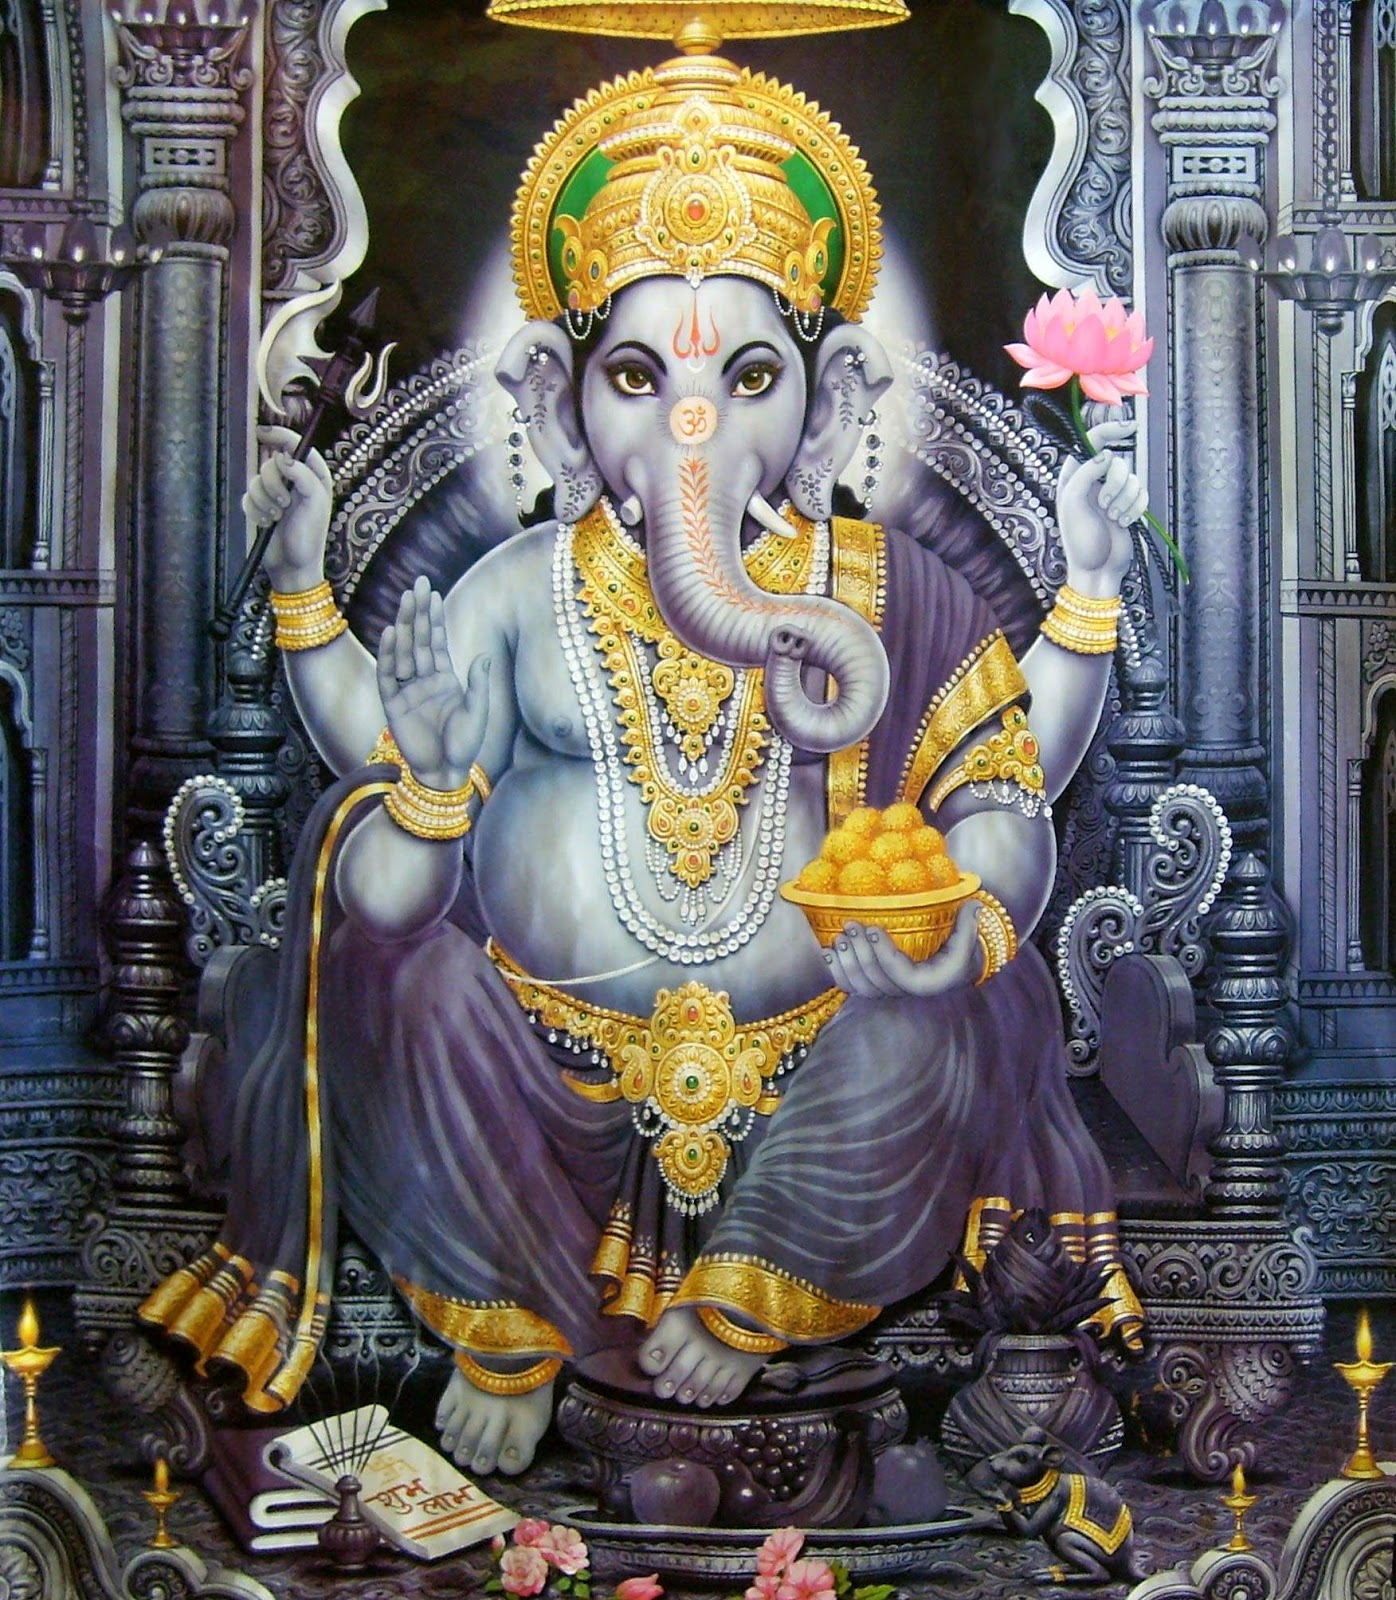 Shri Ganesh Hd Wallpaper: 25 Best Ganesha Wallpapers - Series 2